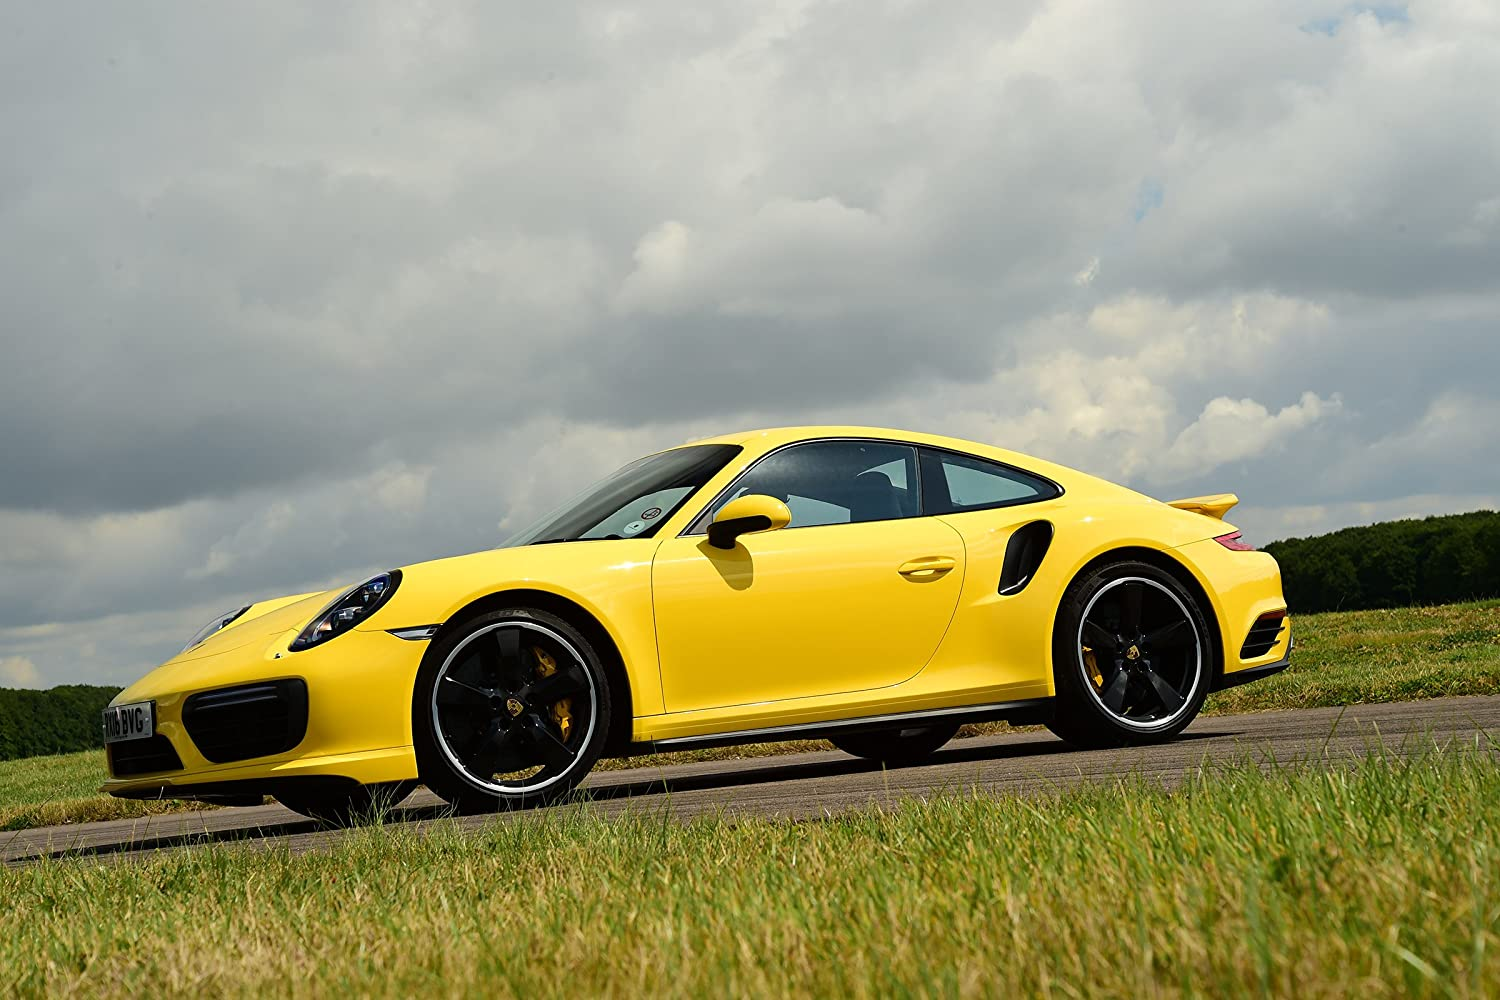 Amazon.com: Porsche 911 Turbo Coupe UK Spec (2016) Car Print on 10 Mil Archival Satin Paper Yellow Front Side Static View 11